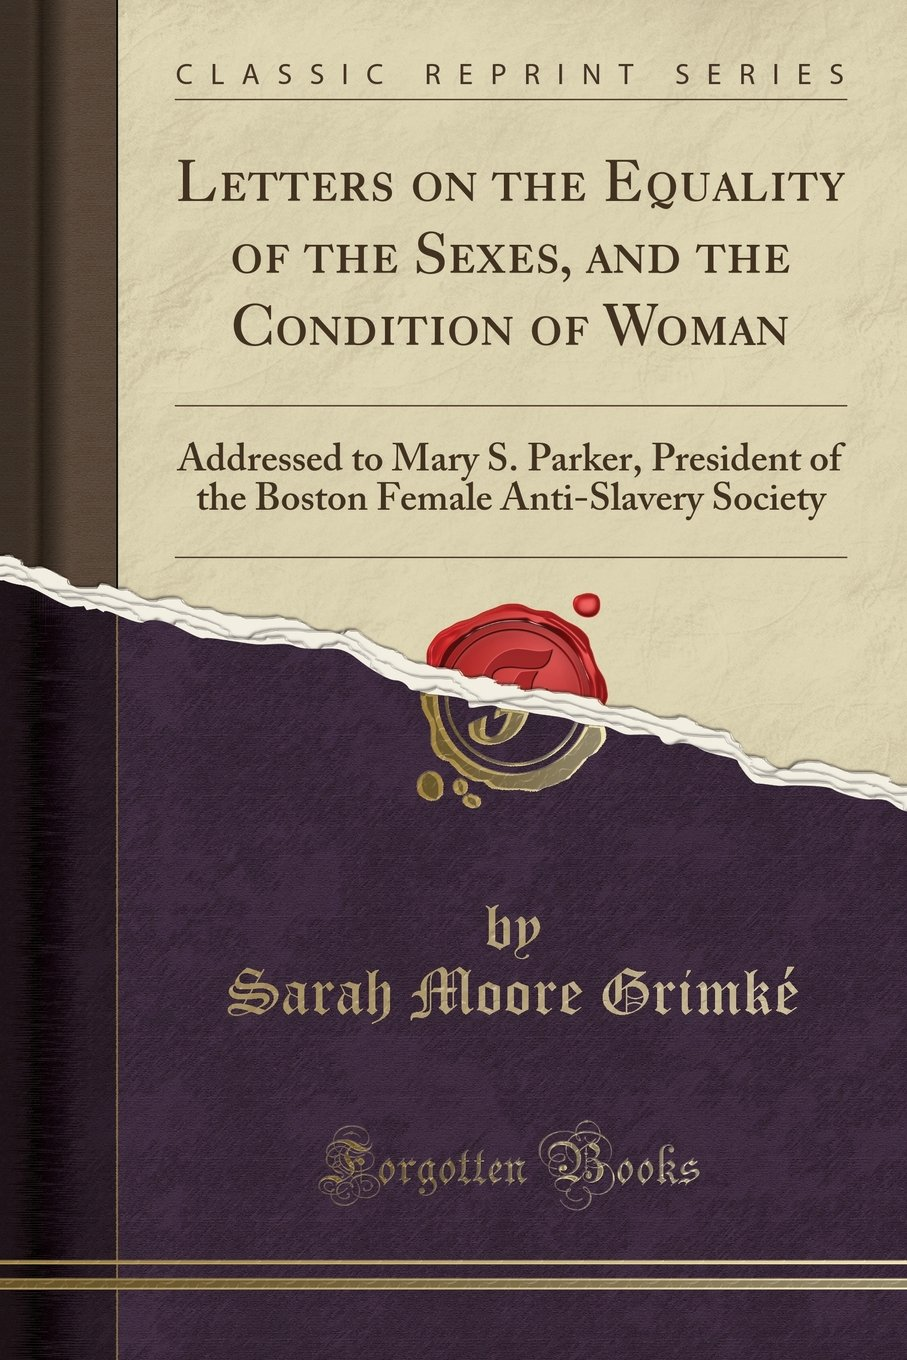 Sarah grimke letters on the equality of the sexes photo 826